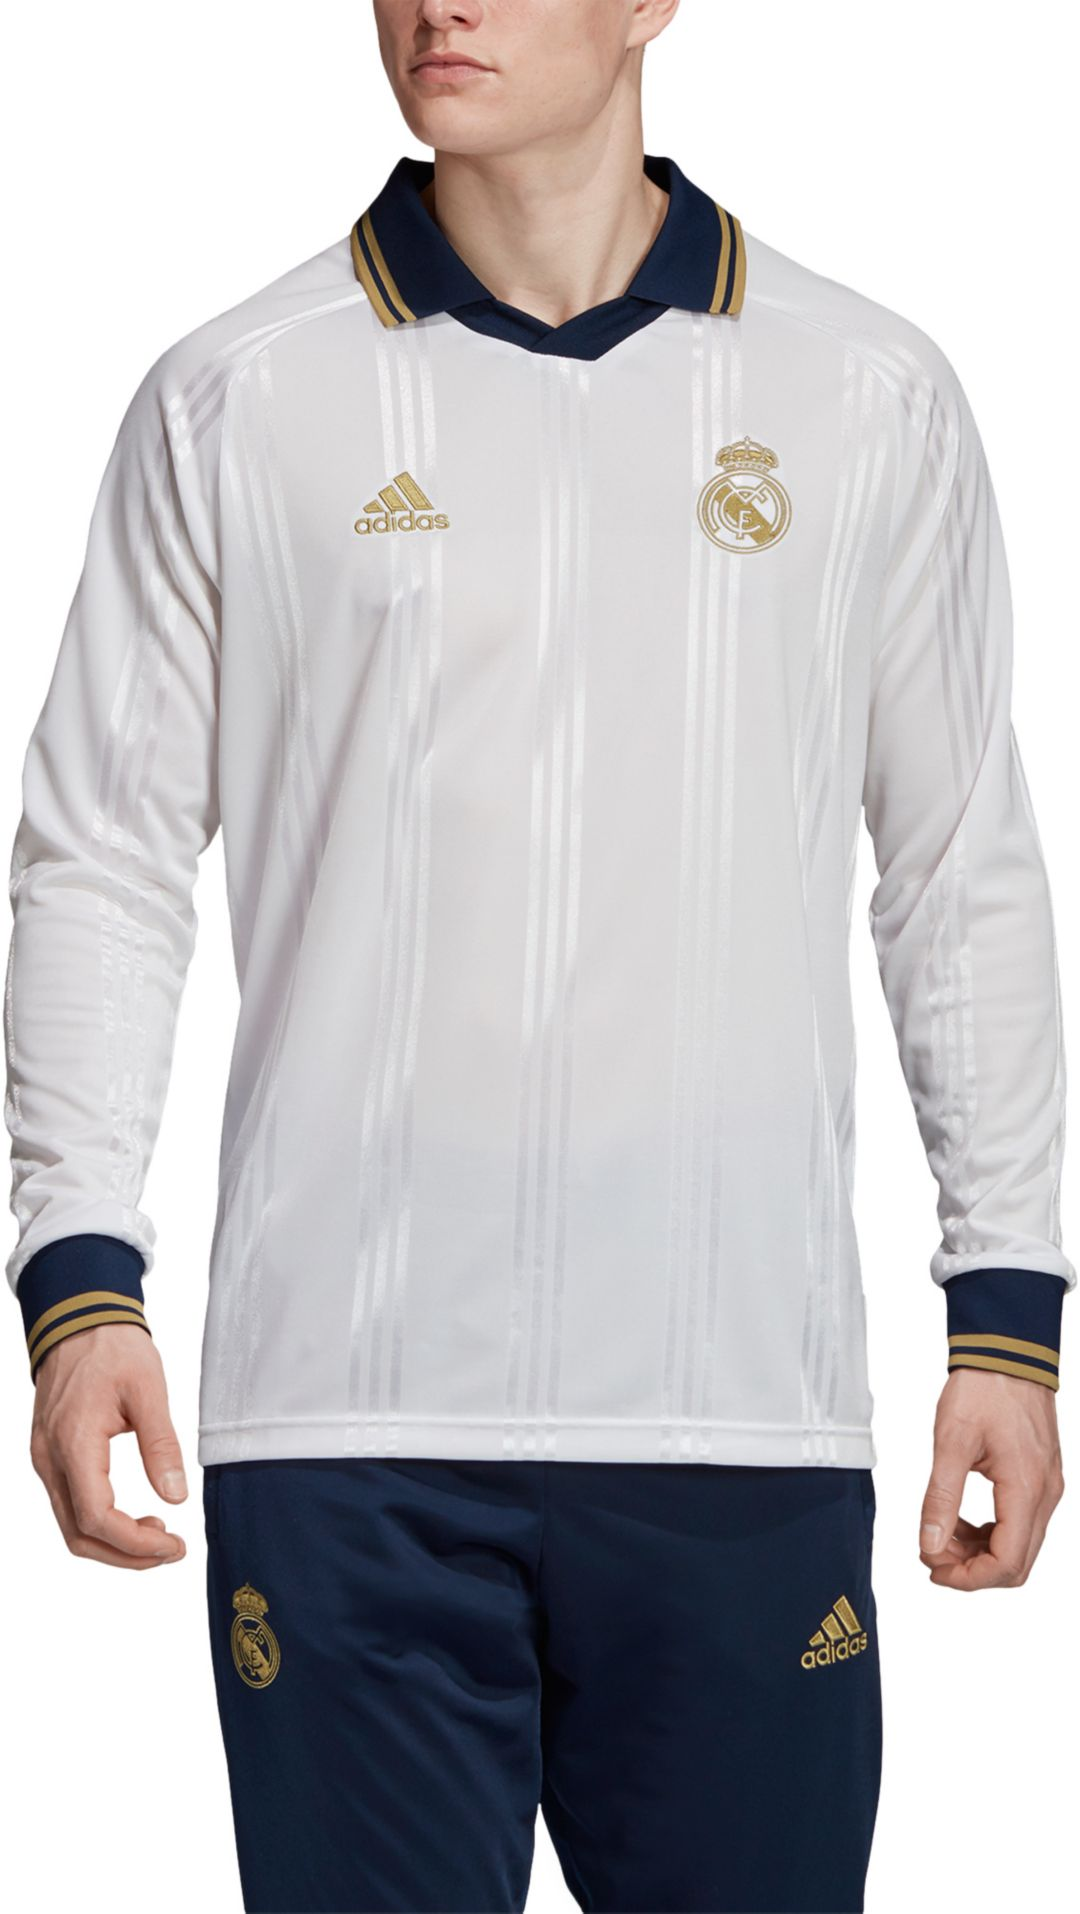 huge discount 8a8b3 44e78 adidas Men's Real Madrid Icons White Long Sleeve Shirt